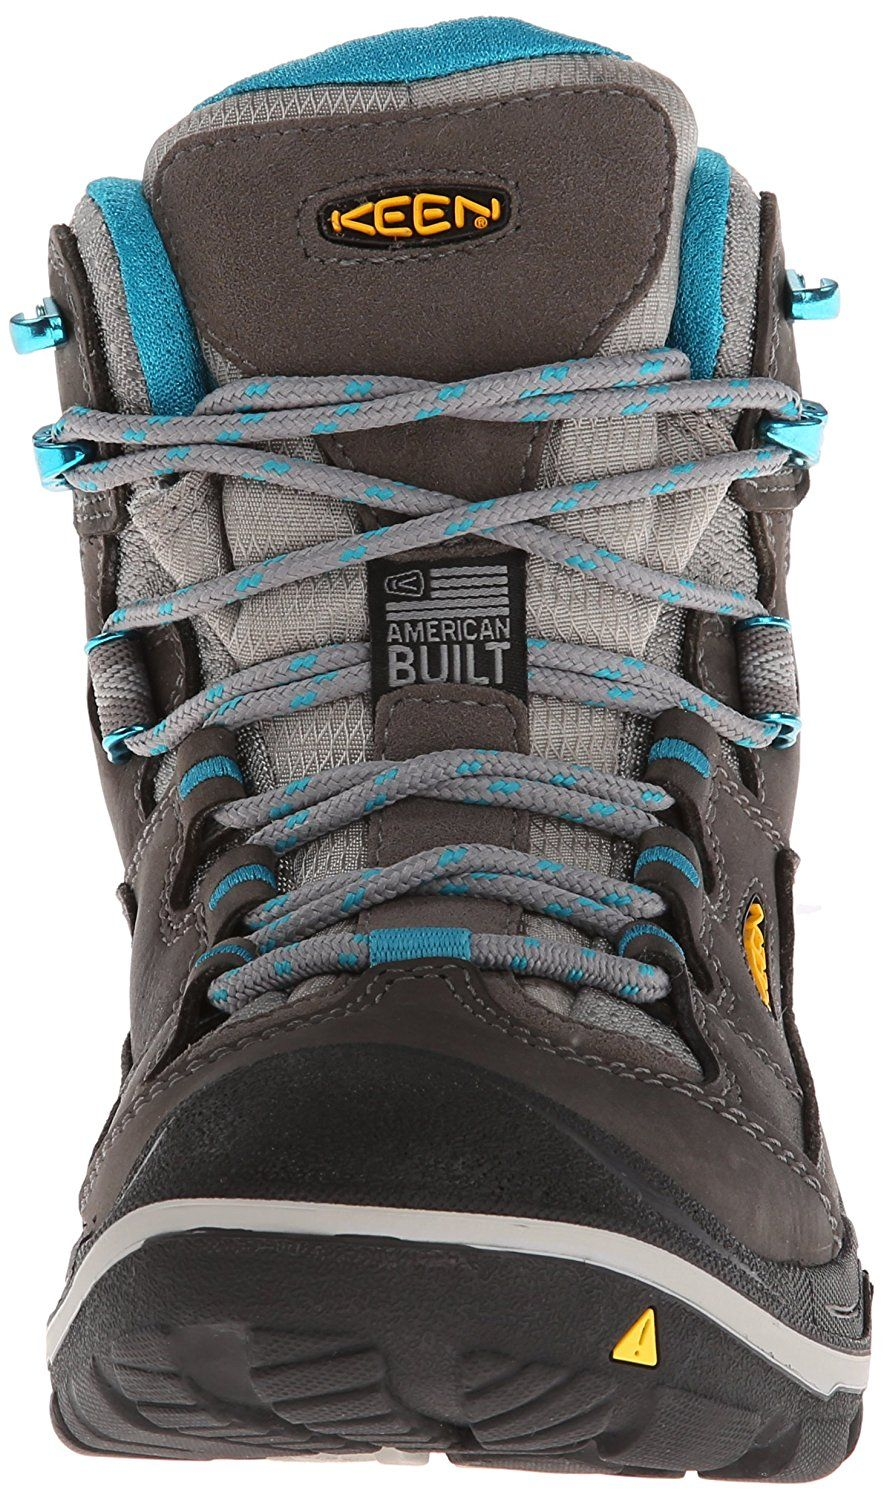 d8a8c158551 KEEN Women's Durand Mid Waterproof Hiking Boot *** Want to know more ...